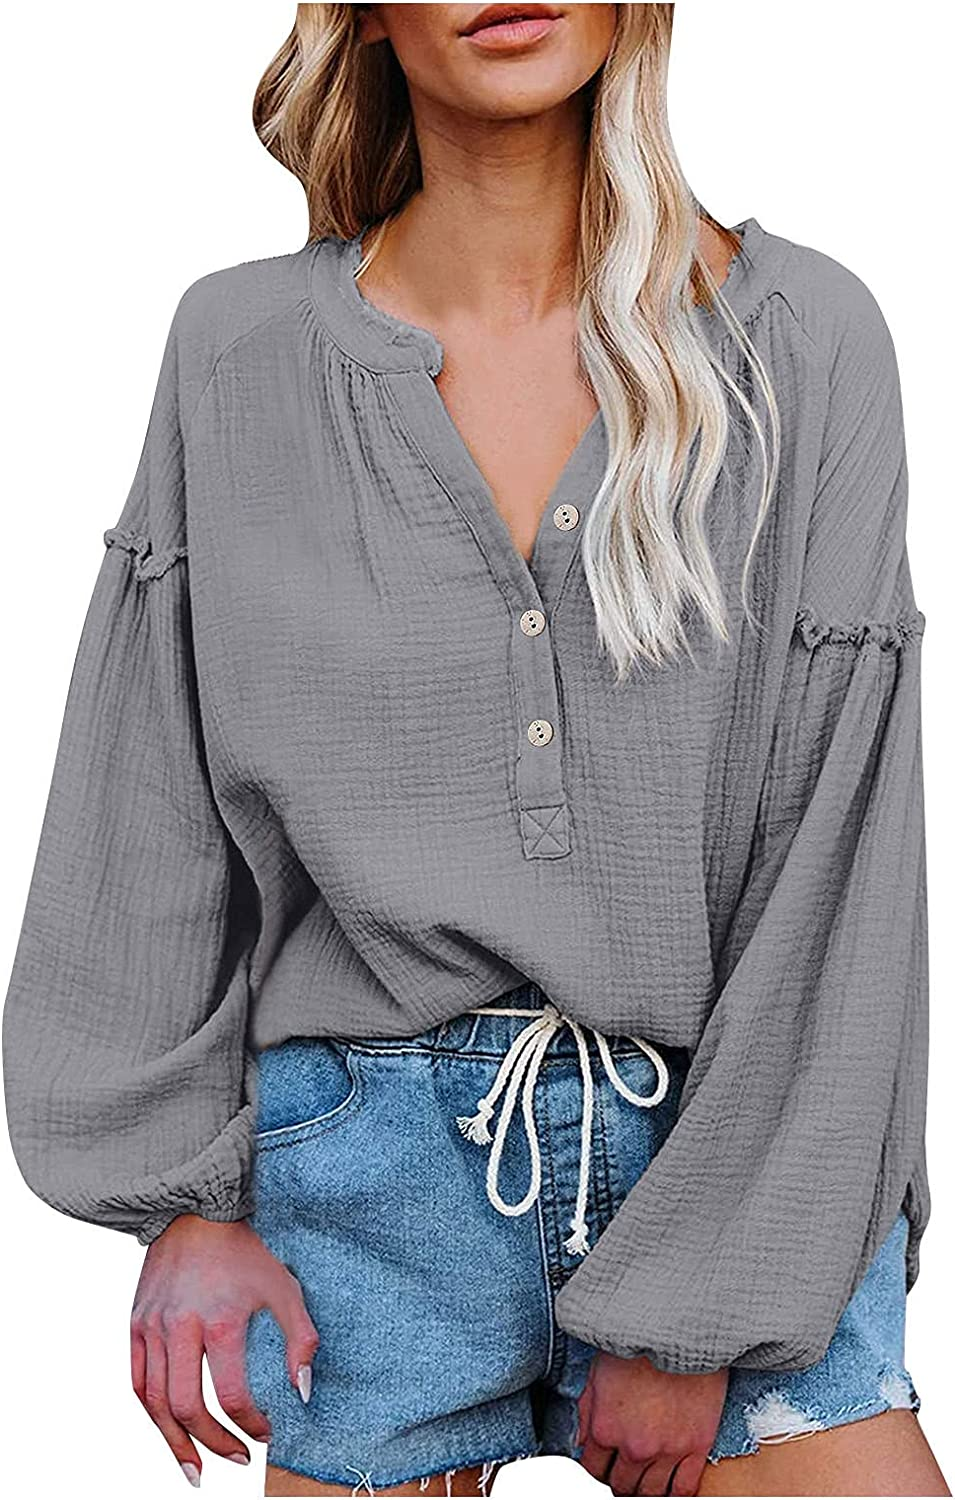 Plus Size Tops for Women Casual Autumn Sweatshirt Fashion V-Neck Button Up Pullover Tops Lantern Tee Shirt